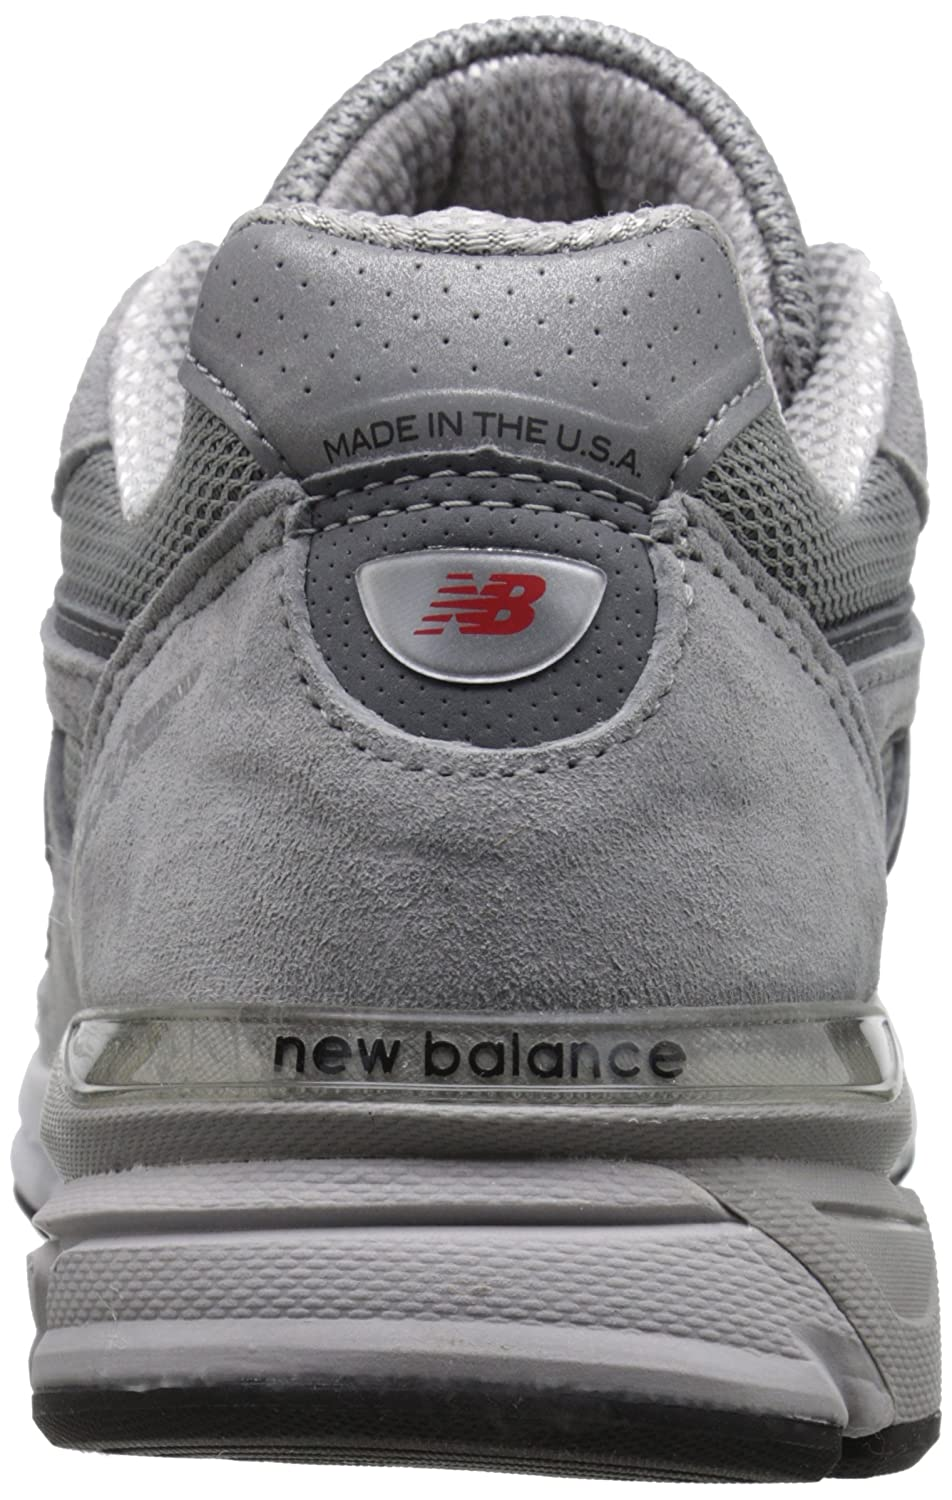 New-Balance-990-990v4-Classicc-Retro-Fashion-Sneaker-Made-in-USA thumbnail 65